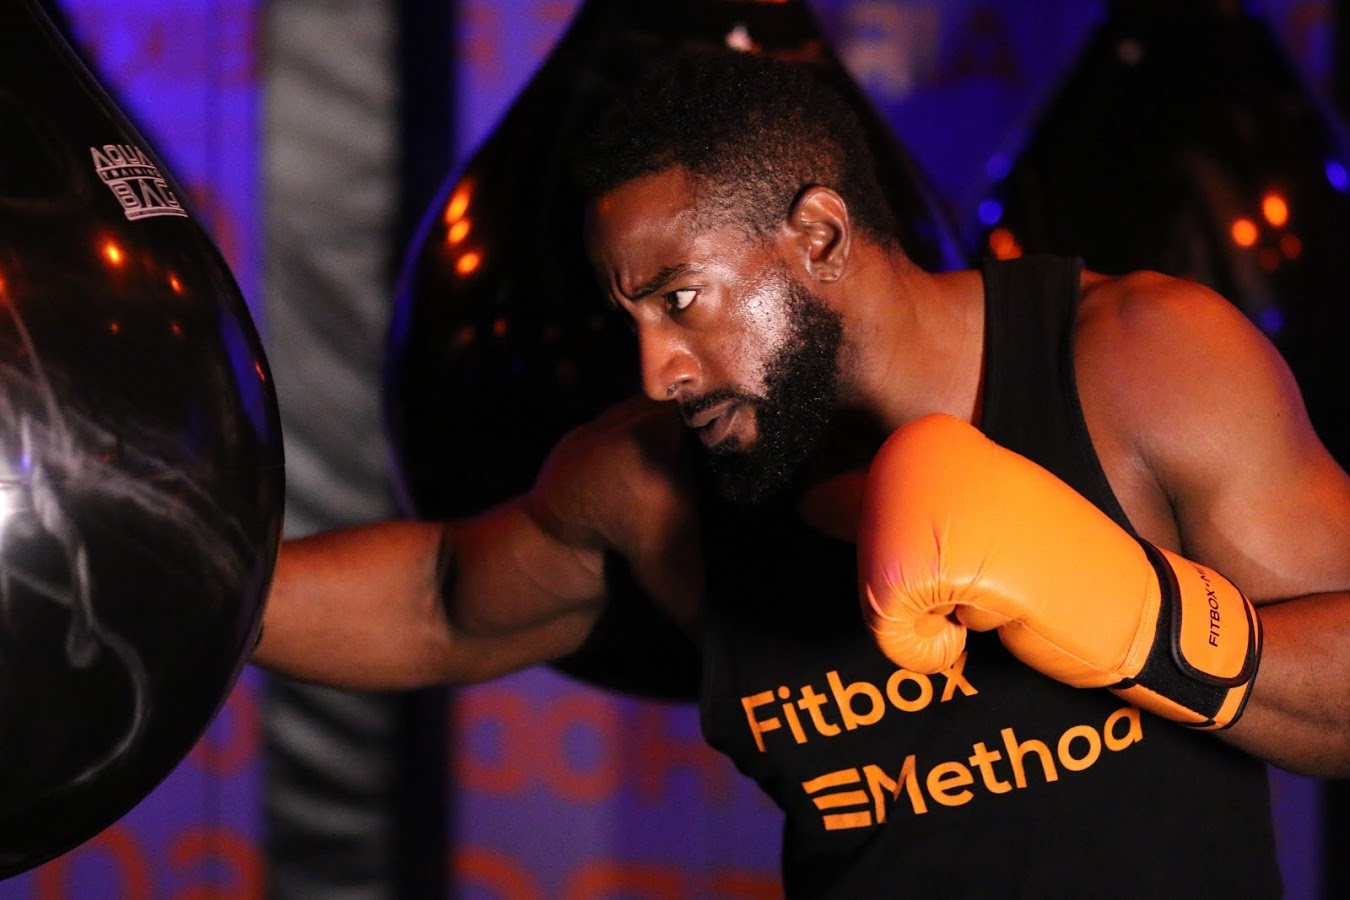 Fitbox Method